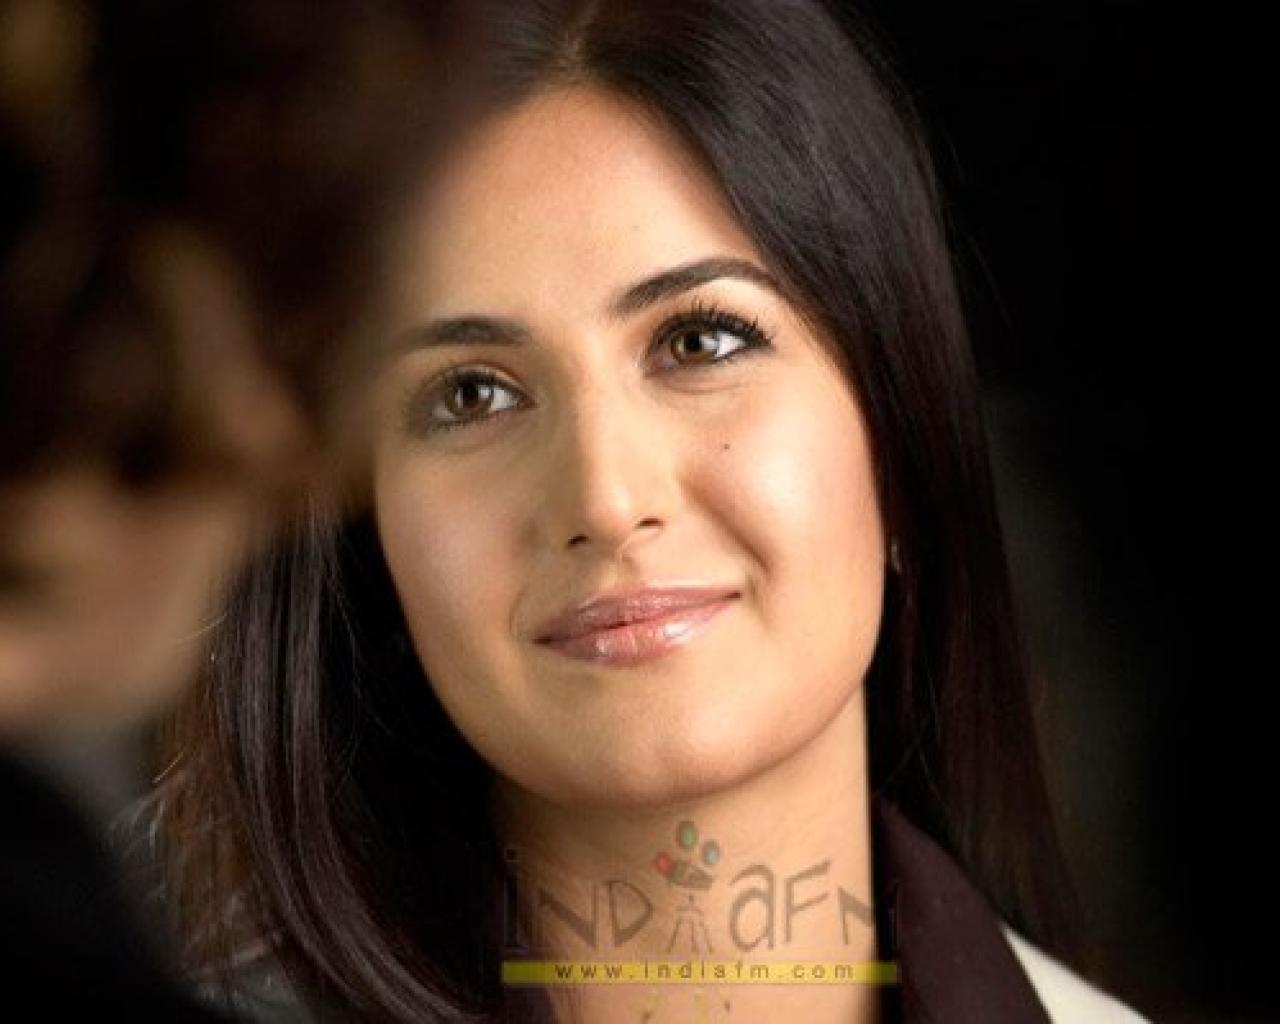 http://hollywoodbollywoodactress-fashion.blogspot.com/2012/05/katrina-kaif.html